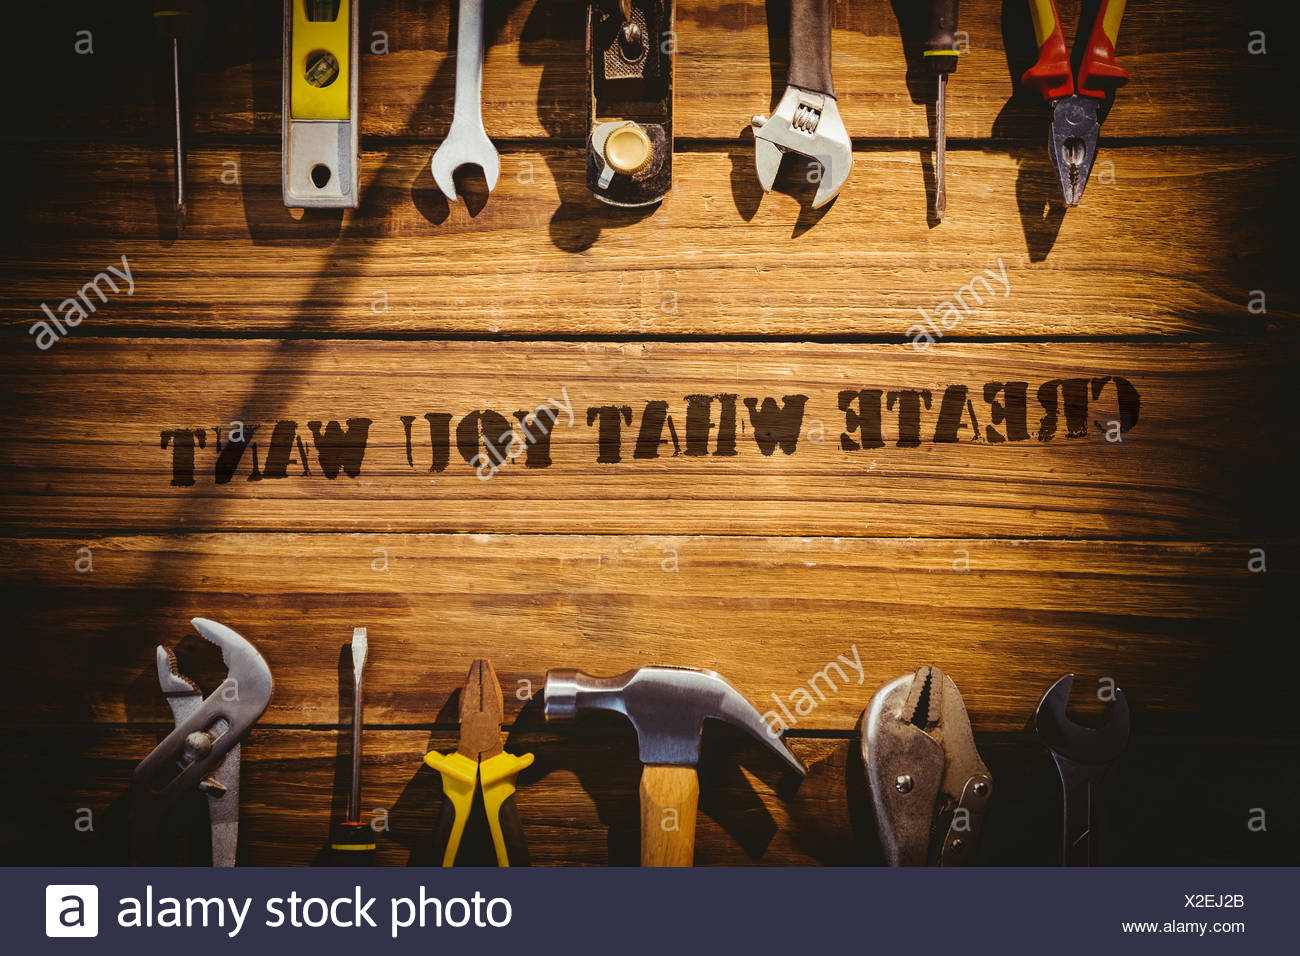 Create what you want against desk with tools - Stock Image